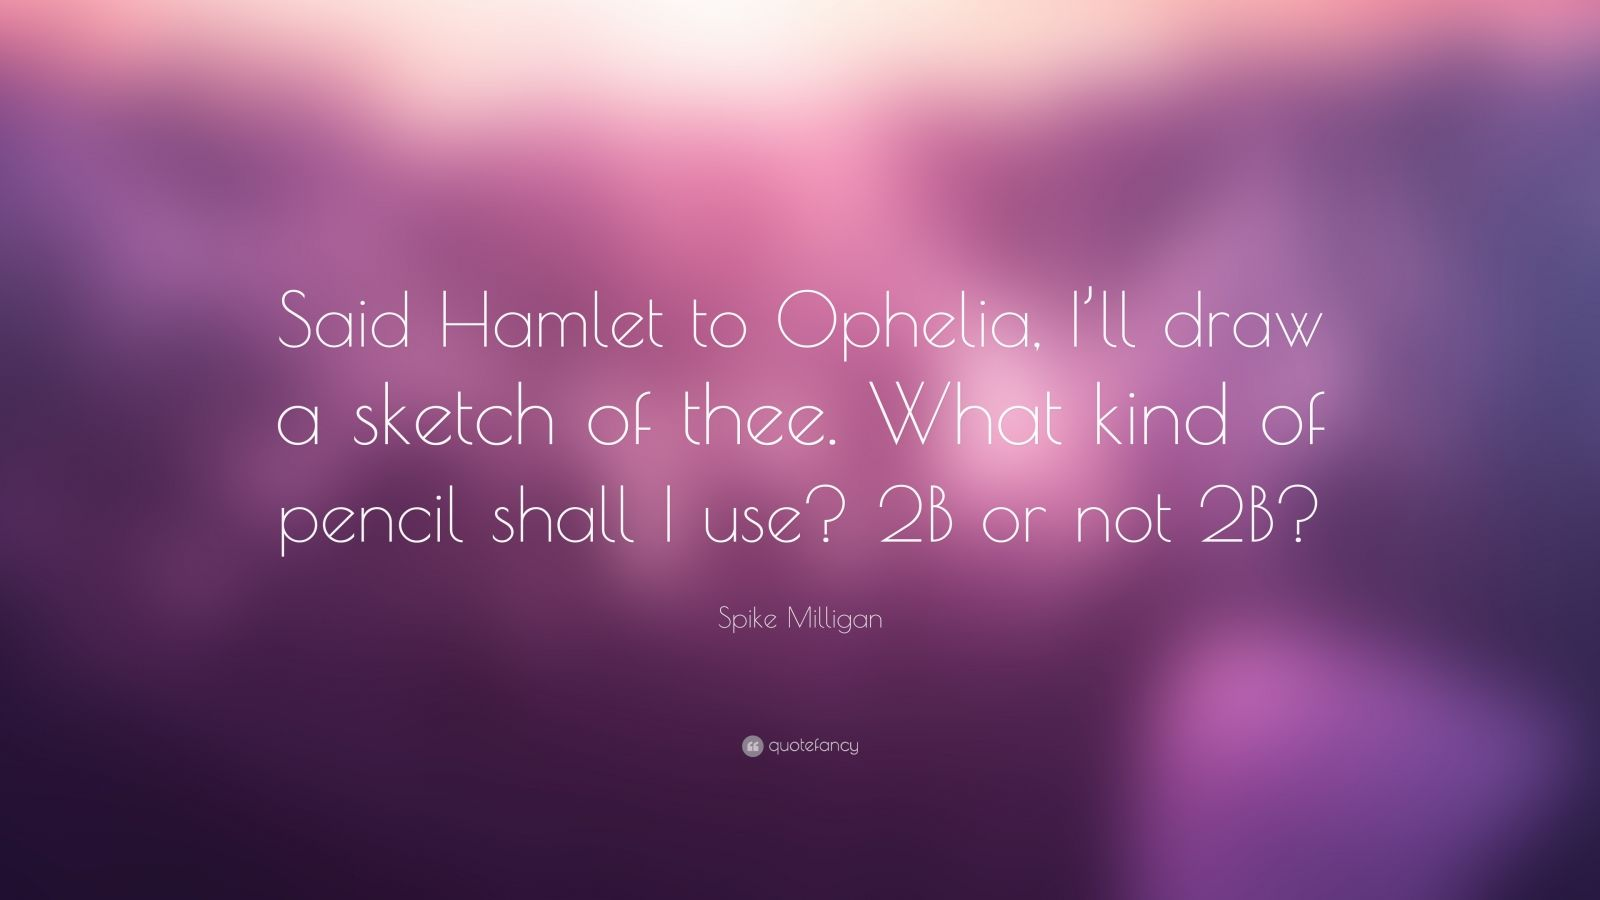 Hamlet Quotes Wallpaper Spike Milligan Quote Said Hamlet To Ophelia I Ll Draw A